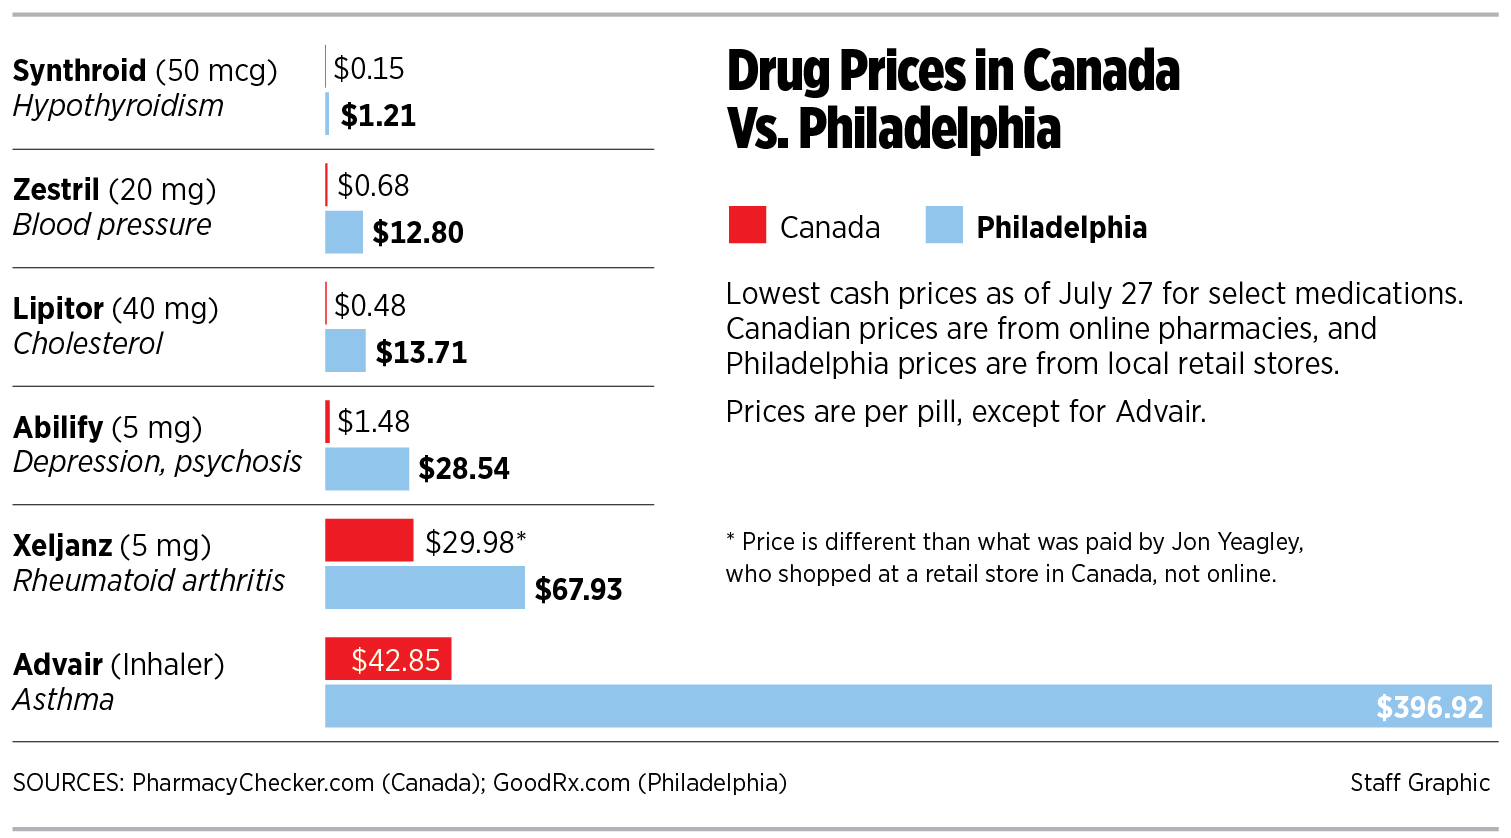 When medication prices are unaffordable, patients travel